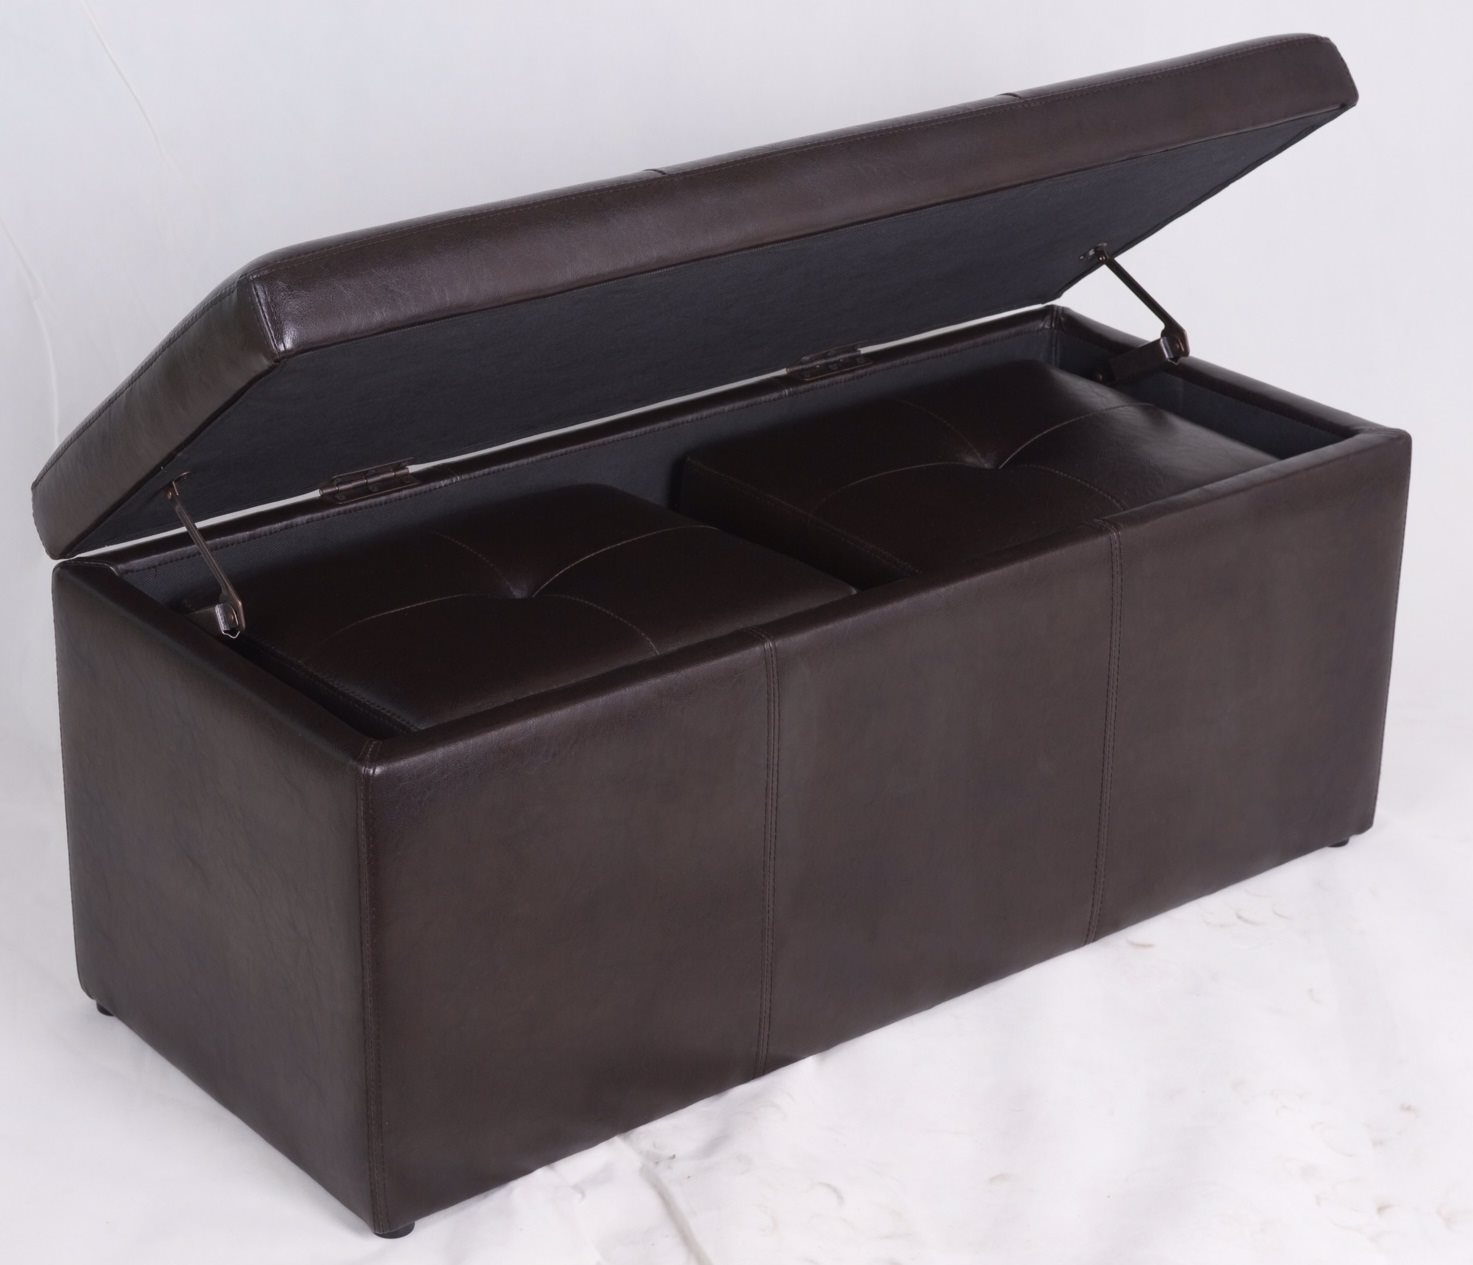 Buy Leather Storage StoolOffice ChairErgonomic ChairToy  : 6f20bad6 db19 4d99 958a 3d32f986b5ae from www.bydeals.net size 1473 x 1265 jpeg 128kB